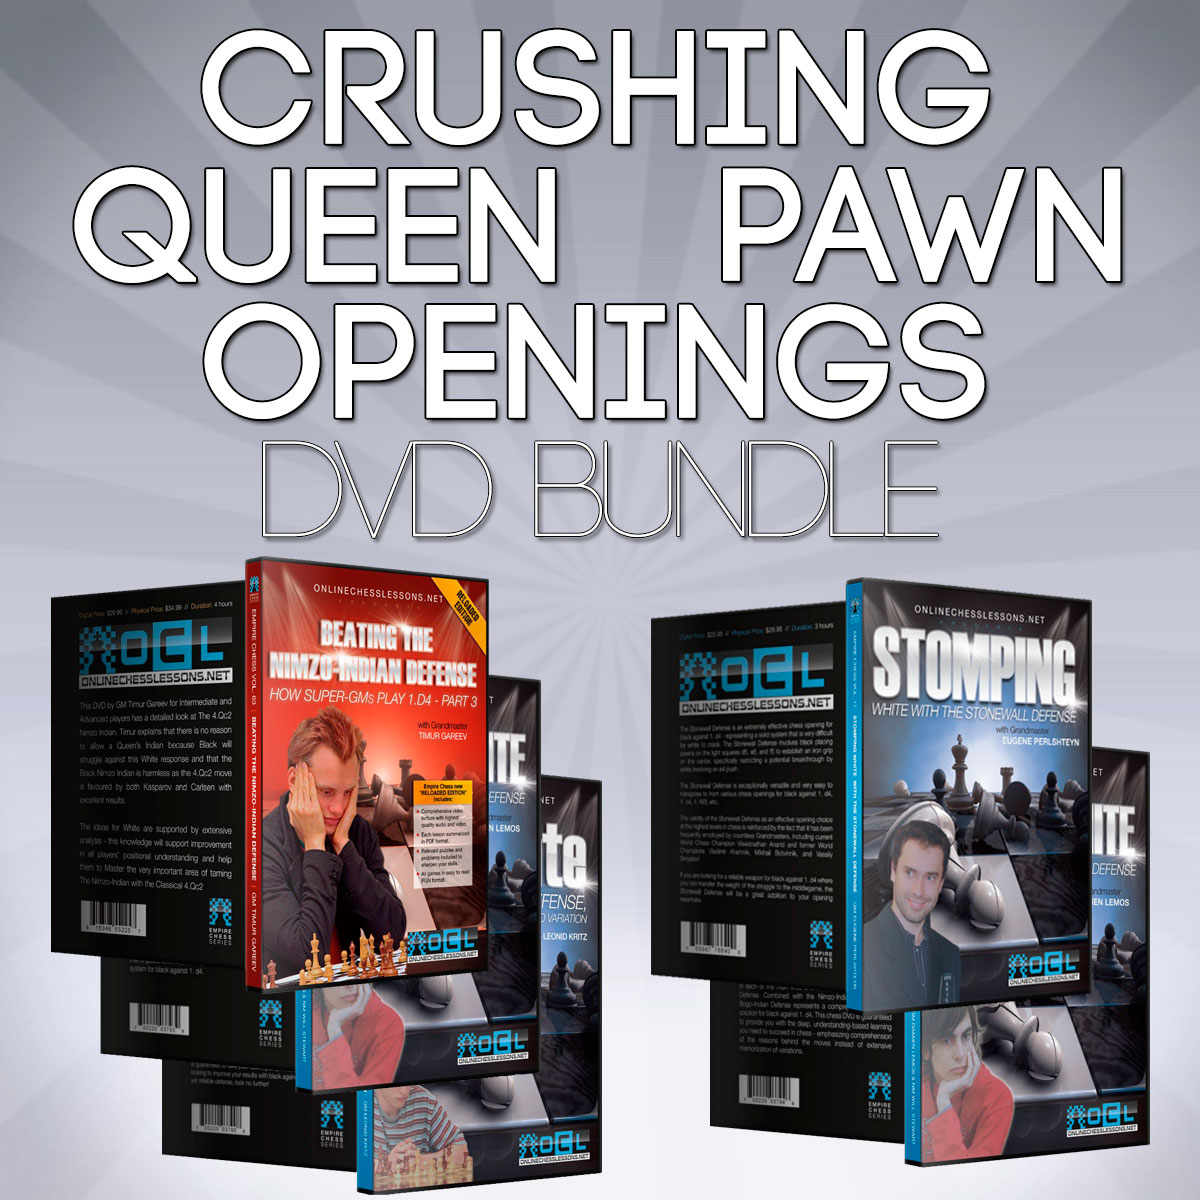 Crushing Queen Pawn Openings DVDs